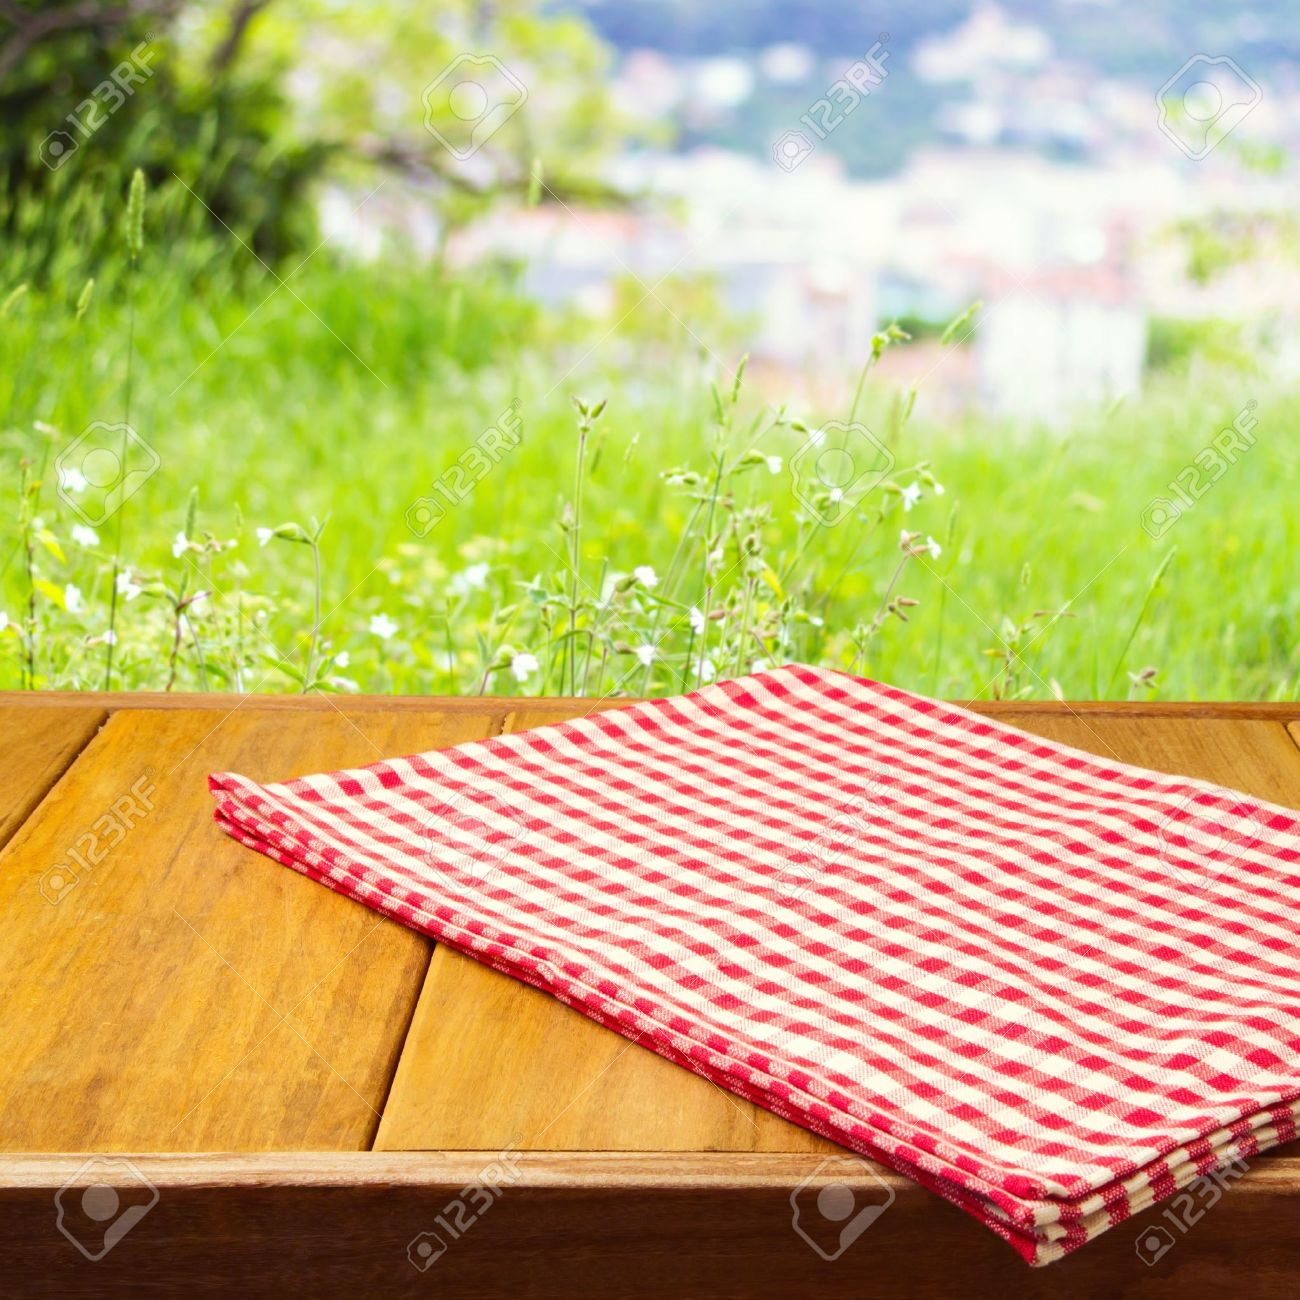 Picnic Table Background background for product montage with tablecloth on wooden table